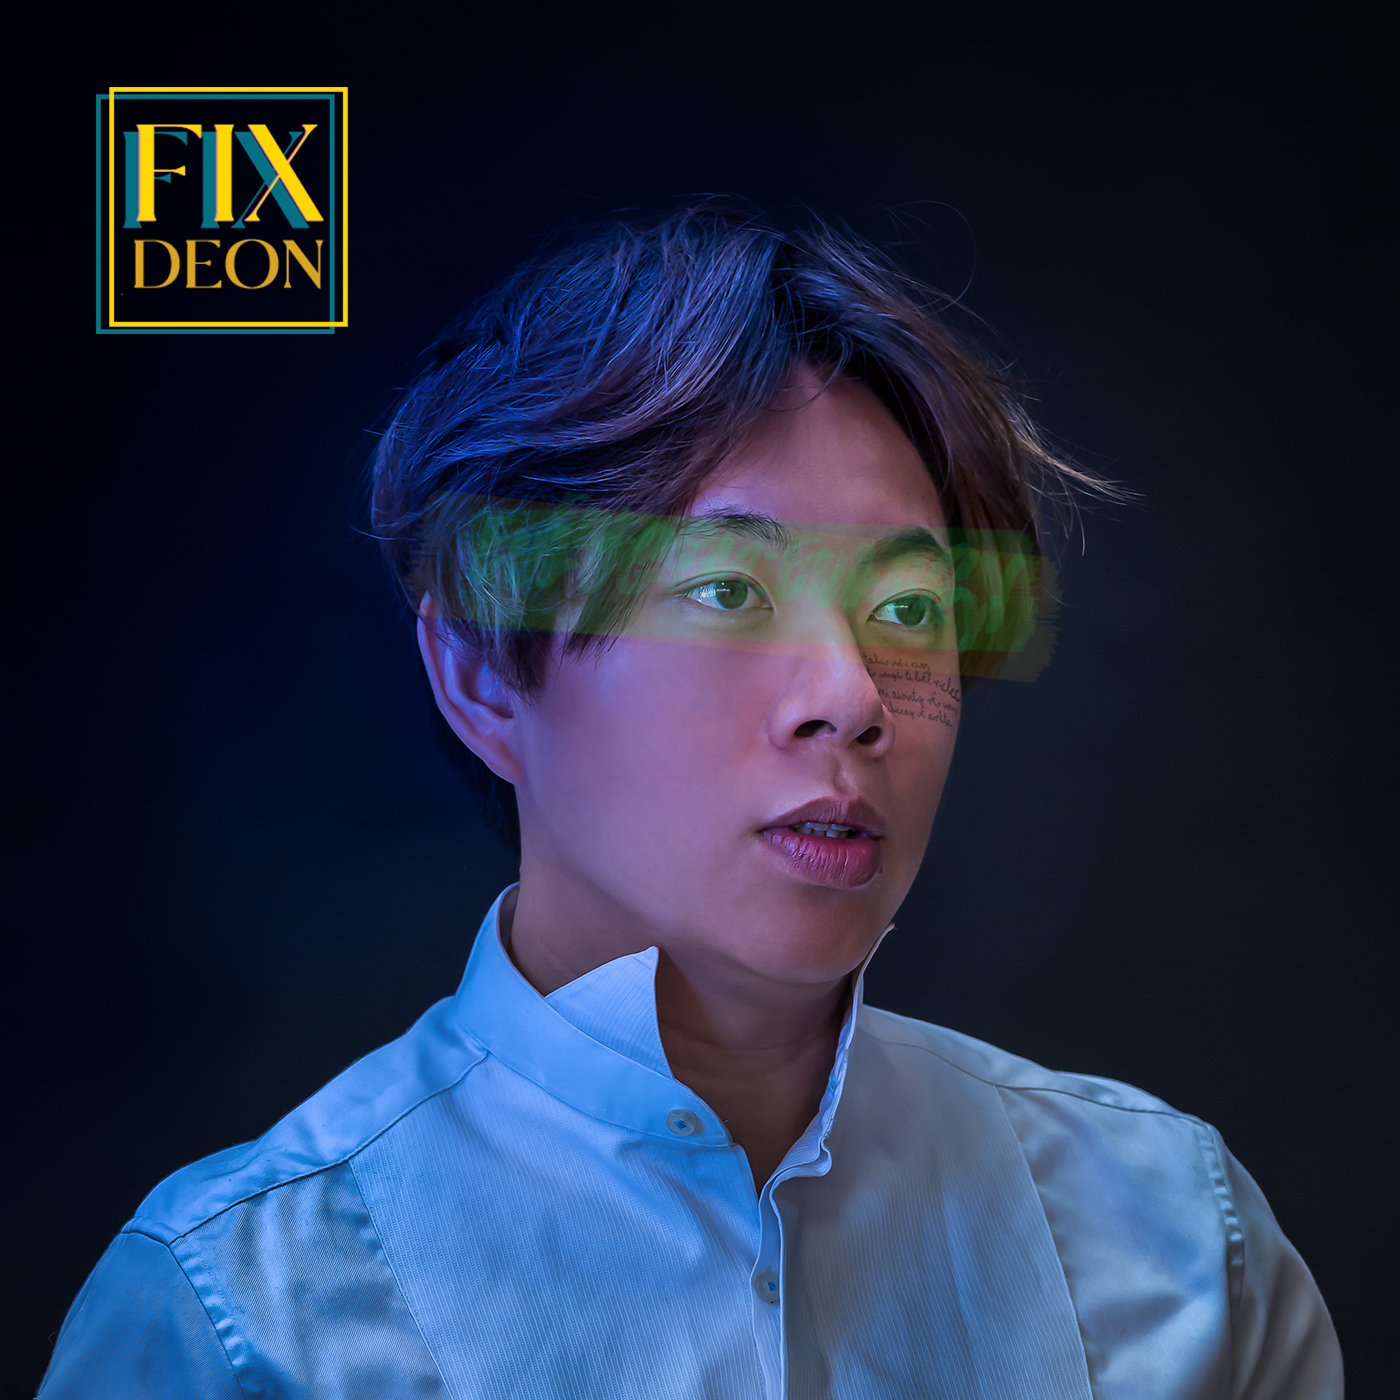 'fix'   single official art work